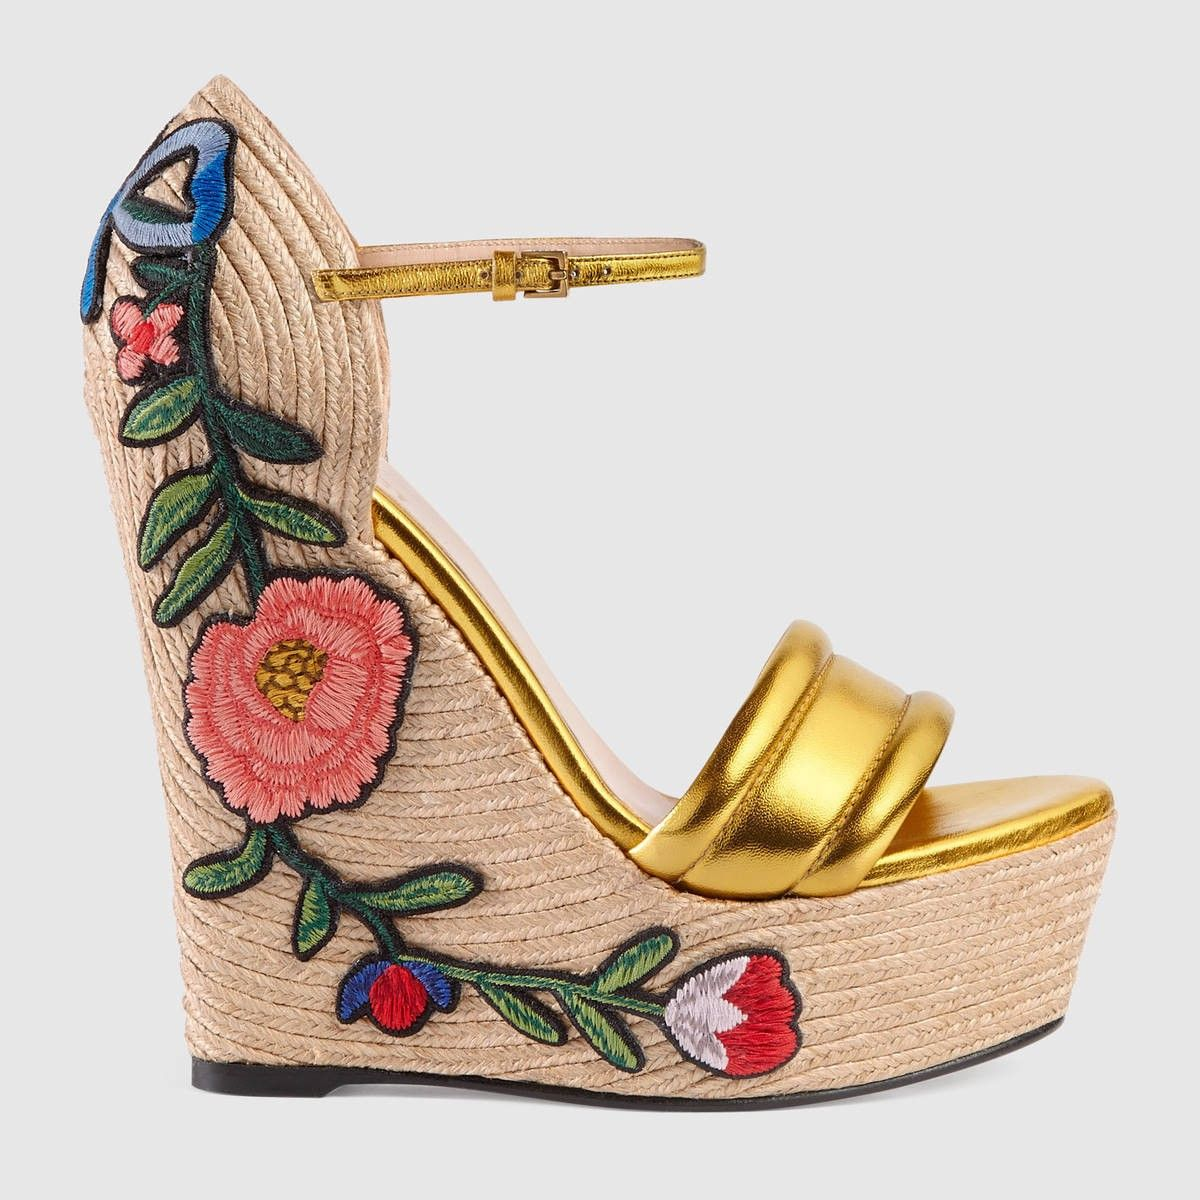 4f239dfd374 GUCCI Embroidered Metallic Leather Platform Espadrille - Metallic Gold  Leather.  gucci  shoes  all